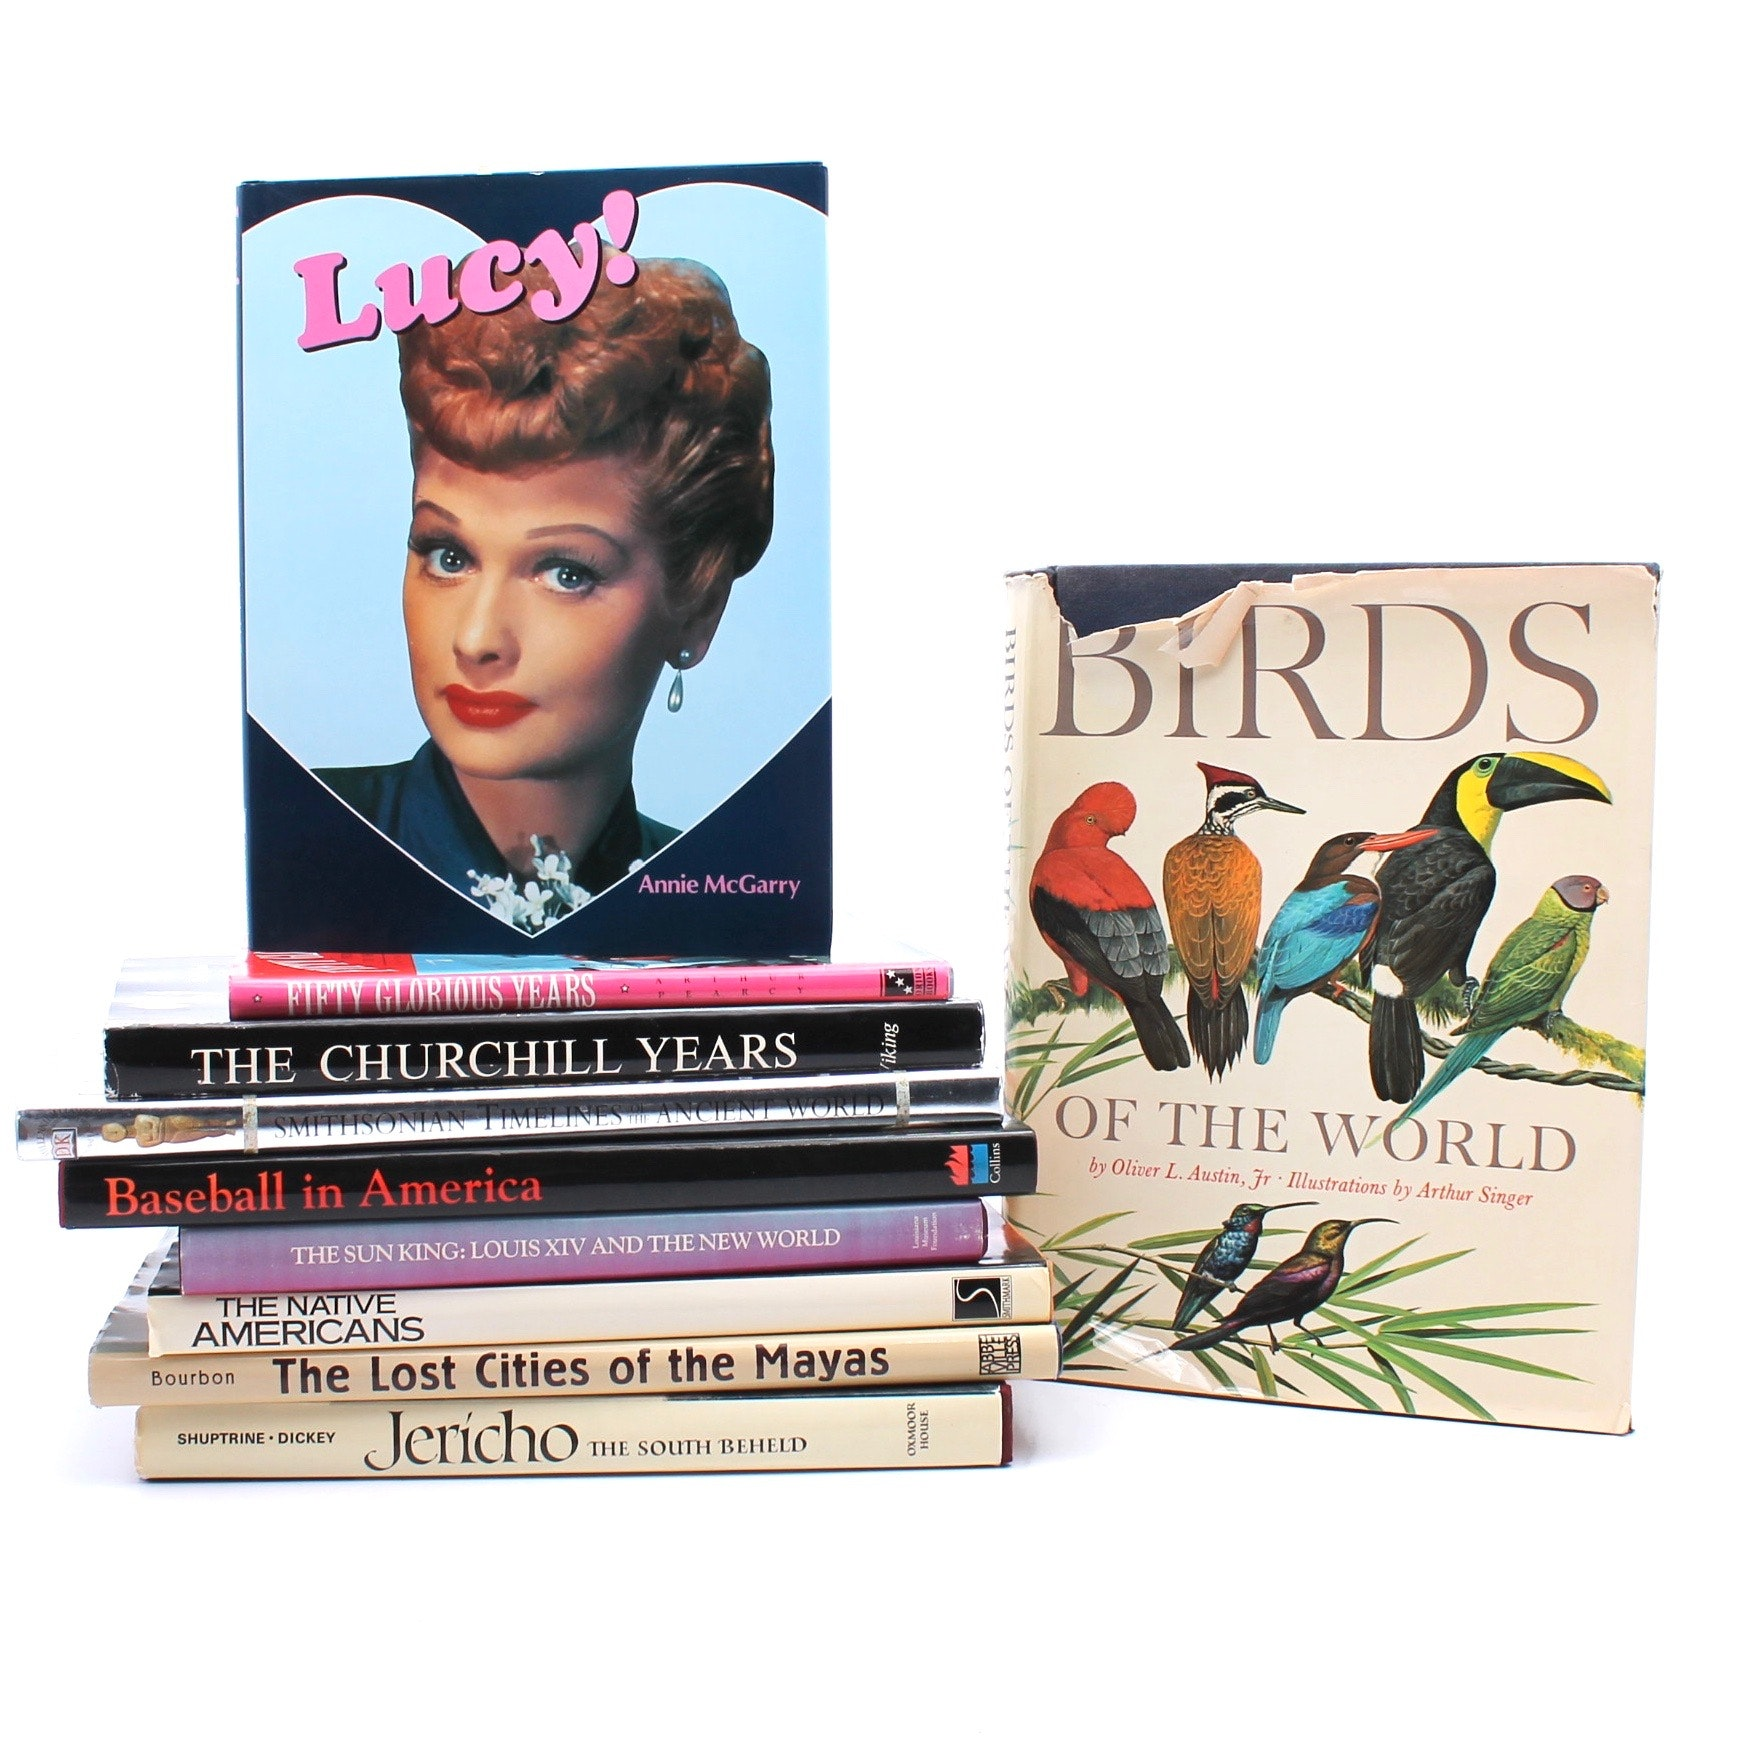 Coffee Table Books Including Historical Subject Matter